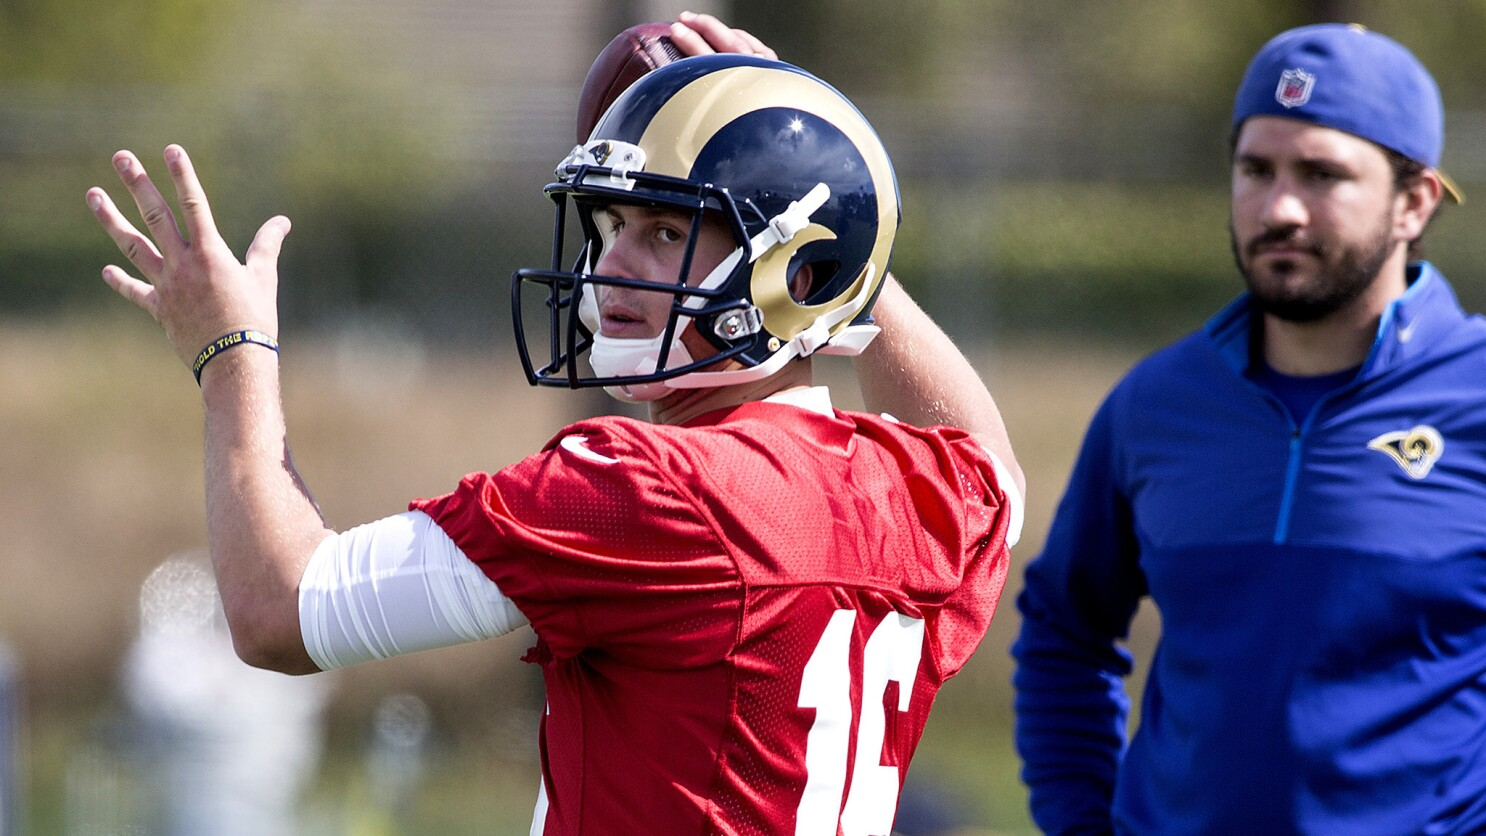 Rams' Jared Goff not worried about missing preseason snaps